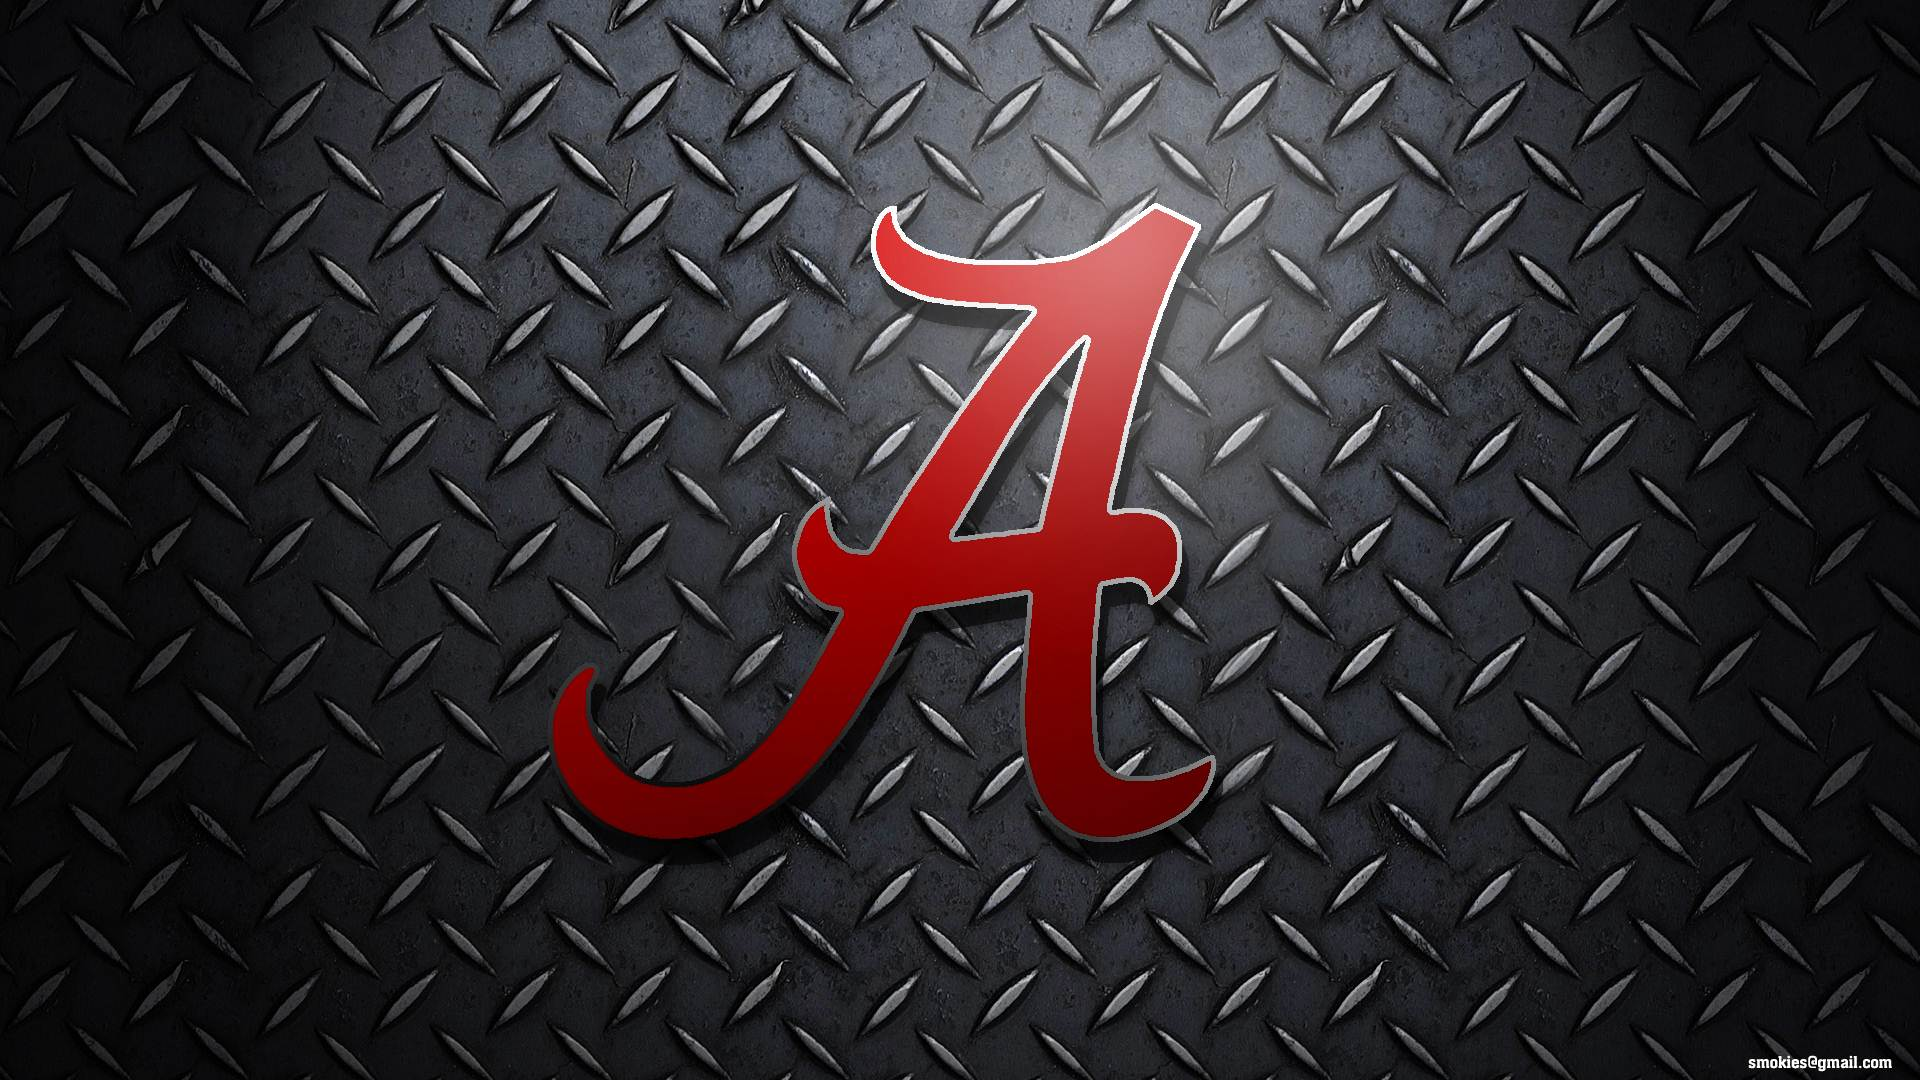 Alabama Crimson Tide Nike Football Uniform Helmetgame Wallpaper 1920x1080